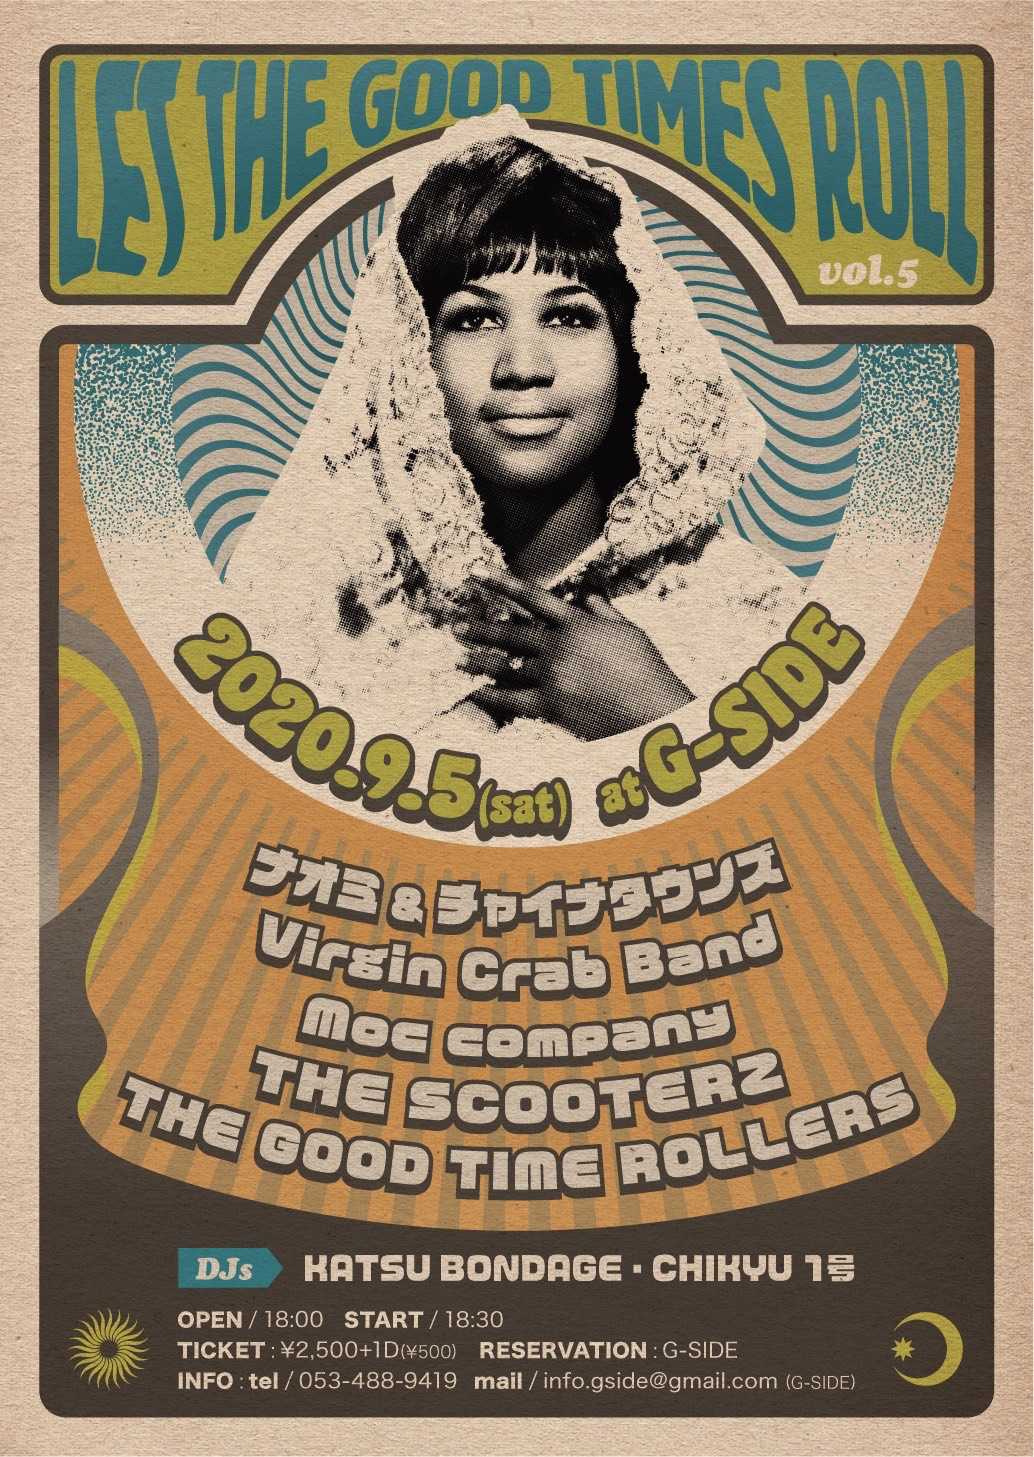 9月5日土曜日 LET THE GOOD TIMES ROLL vol.5